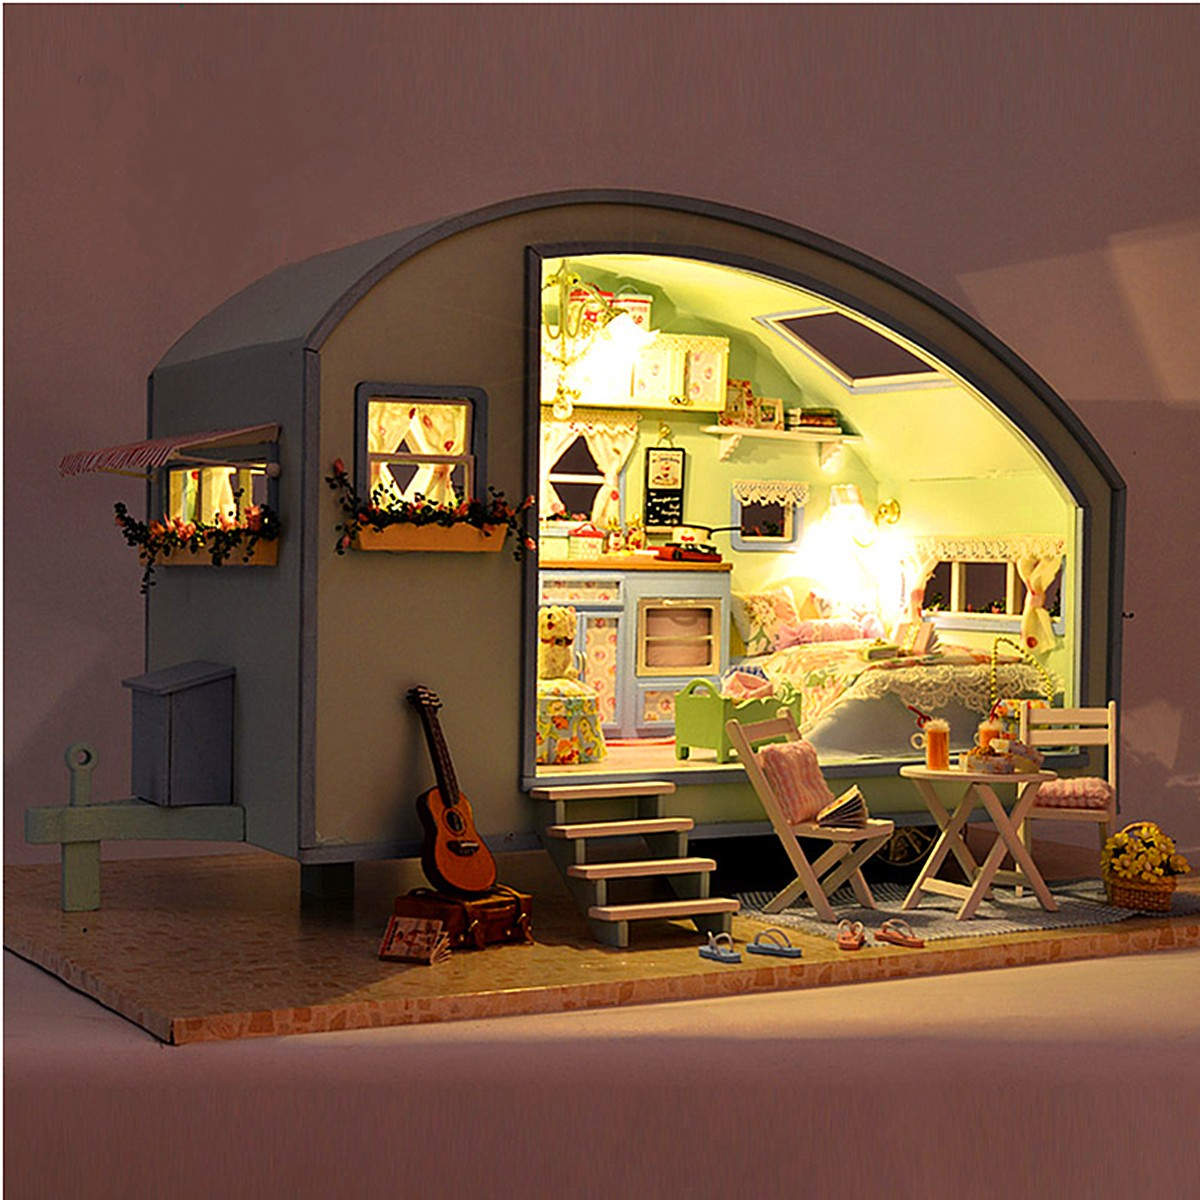 DIY Wooden Dollhouse Miniature Kit Doll house LED+Music+Voice Control